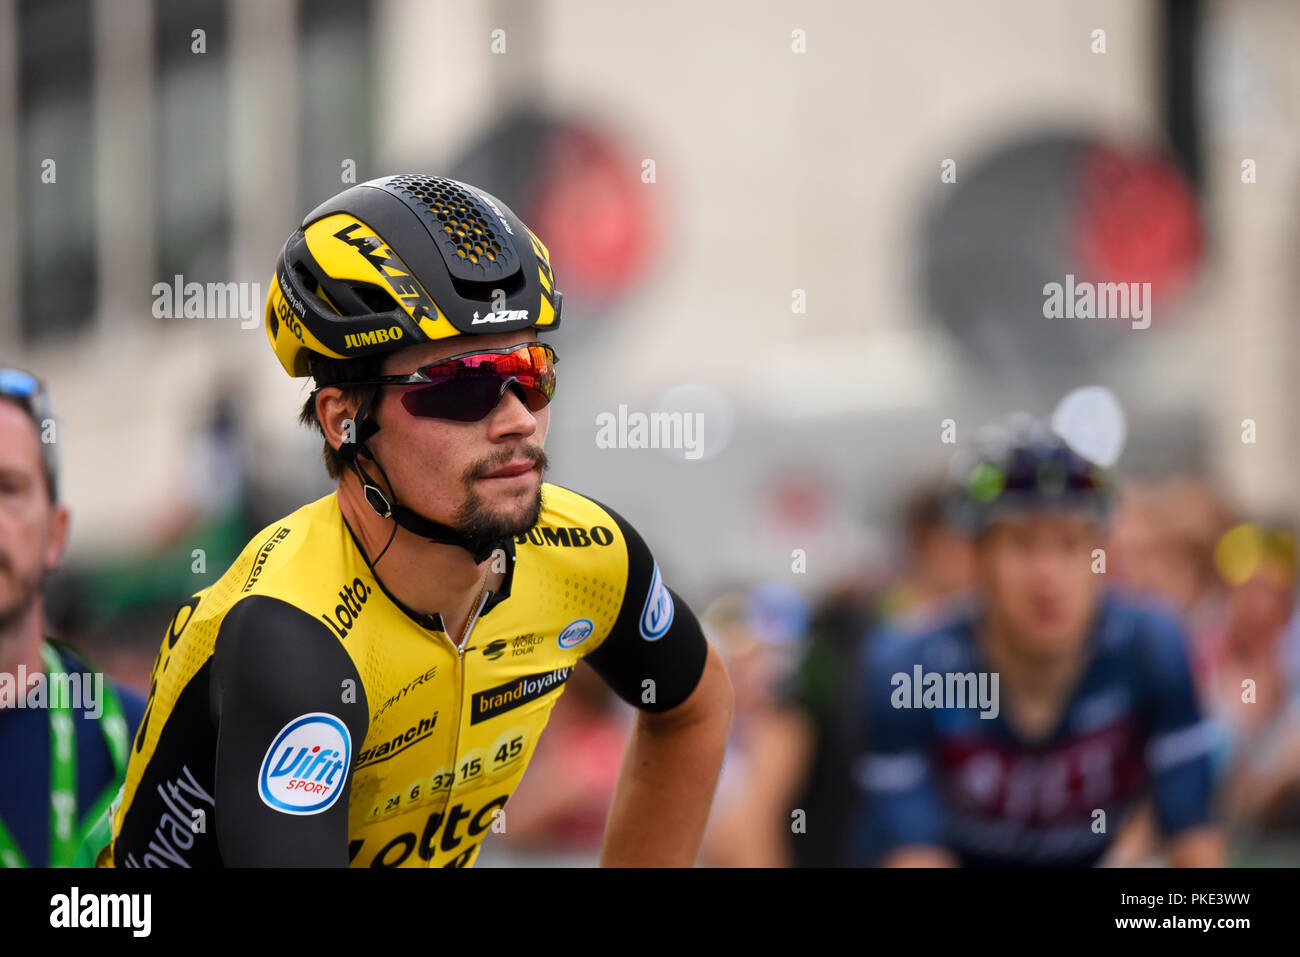 primoz-roglic-of-team-lotto-nl-jumbo-at-the-ovo-energy-tour-of-britain-cycle-race-stage-8-london-uk-PKE3WW.jpg